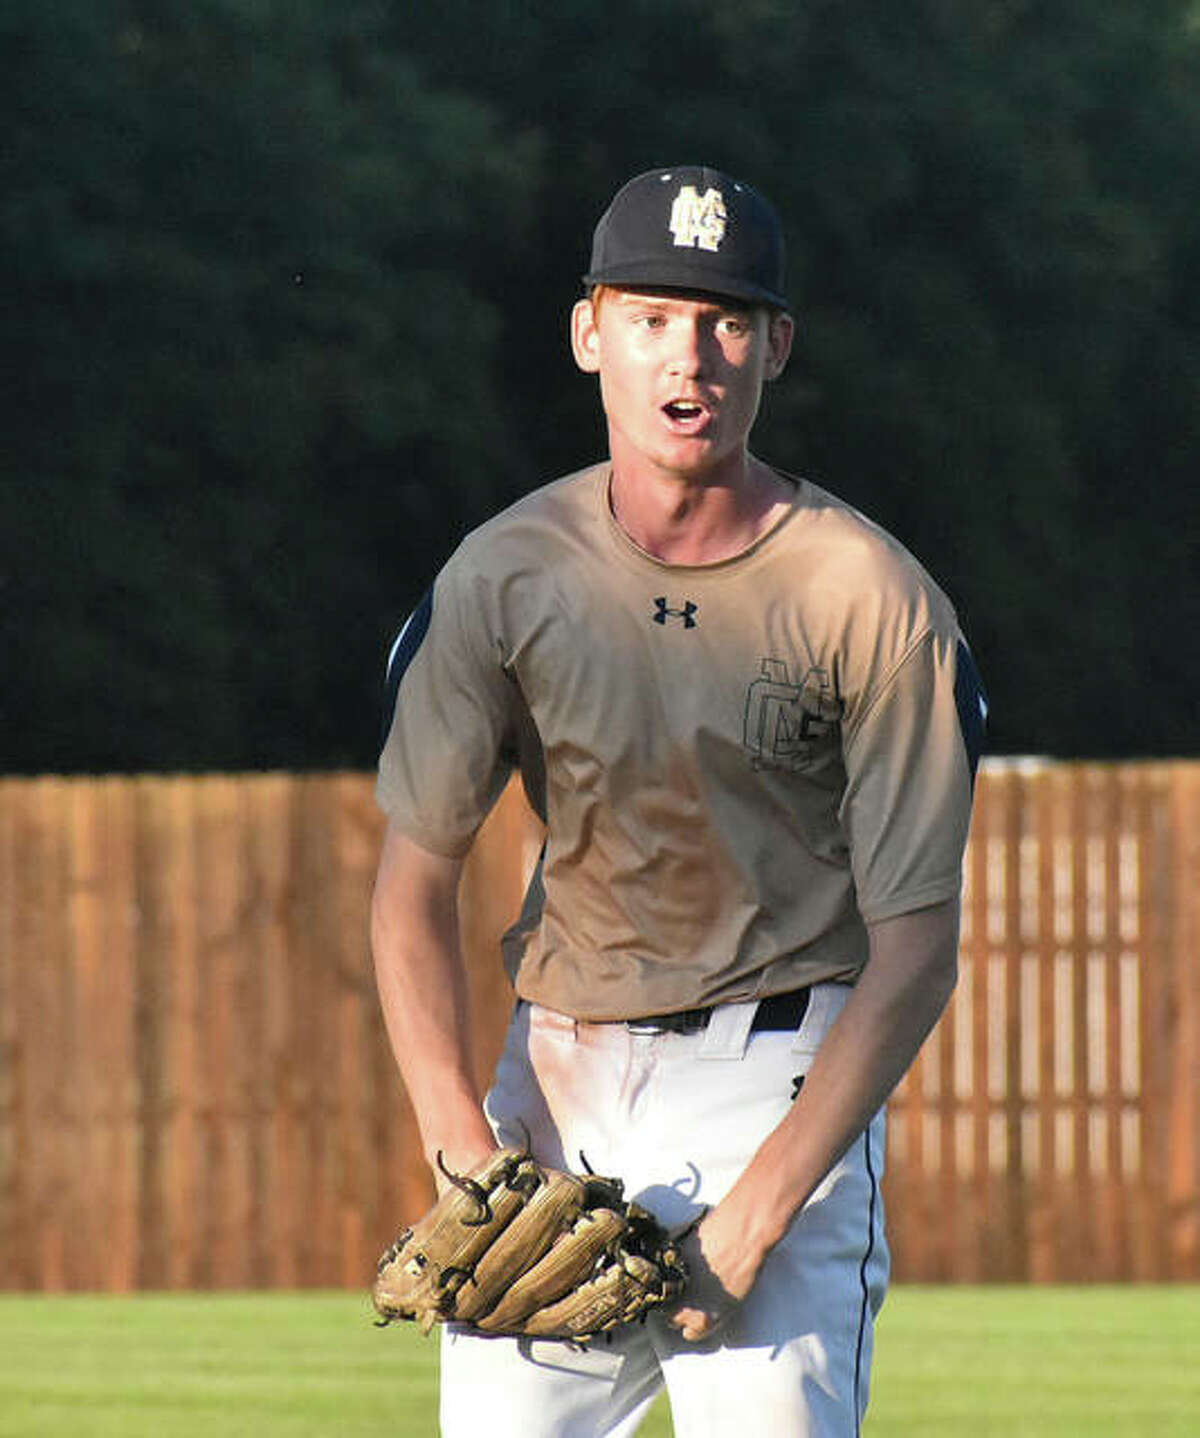 Father McGivney starting pitcher Drew Sowerwine is fired up after getting out of a jam in the third inning against Camp Point Central on Monday in Springfield.